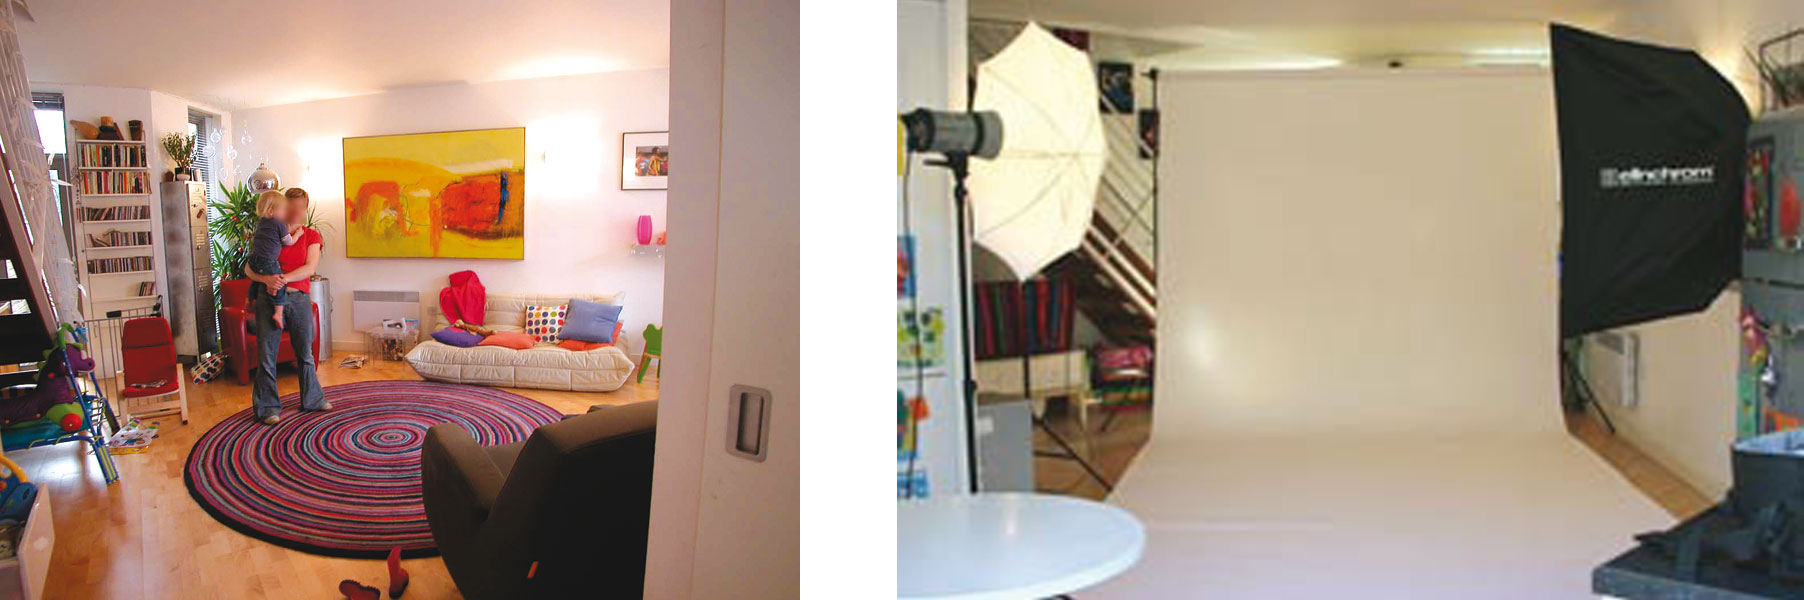 transorming space: photostudio and home